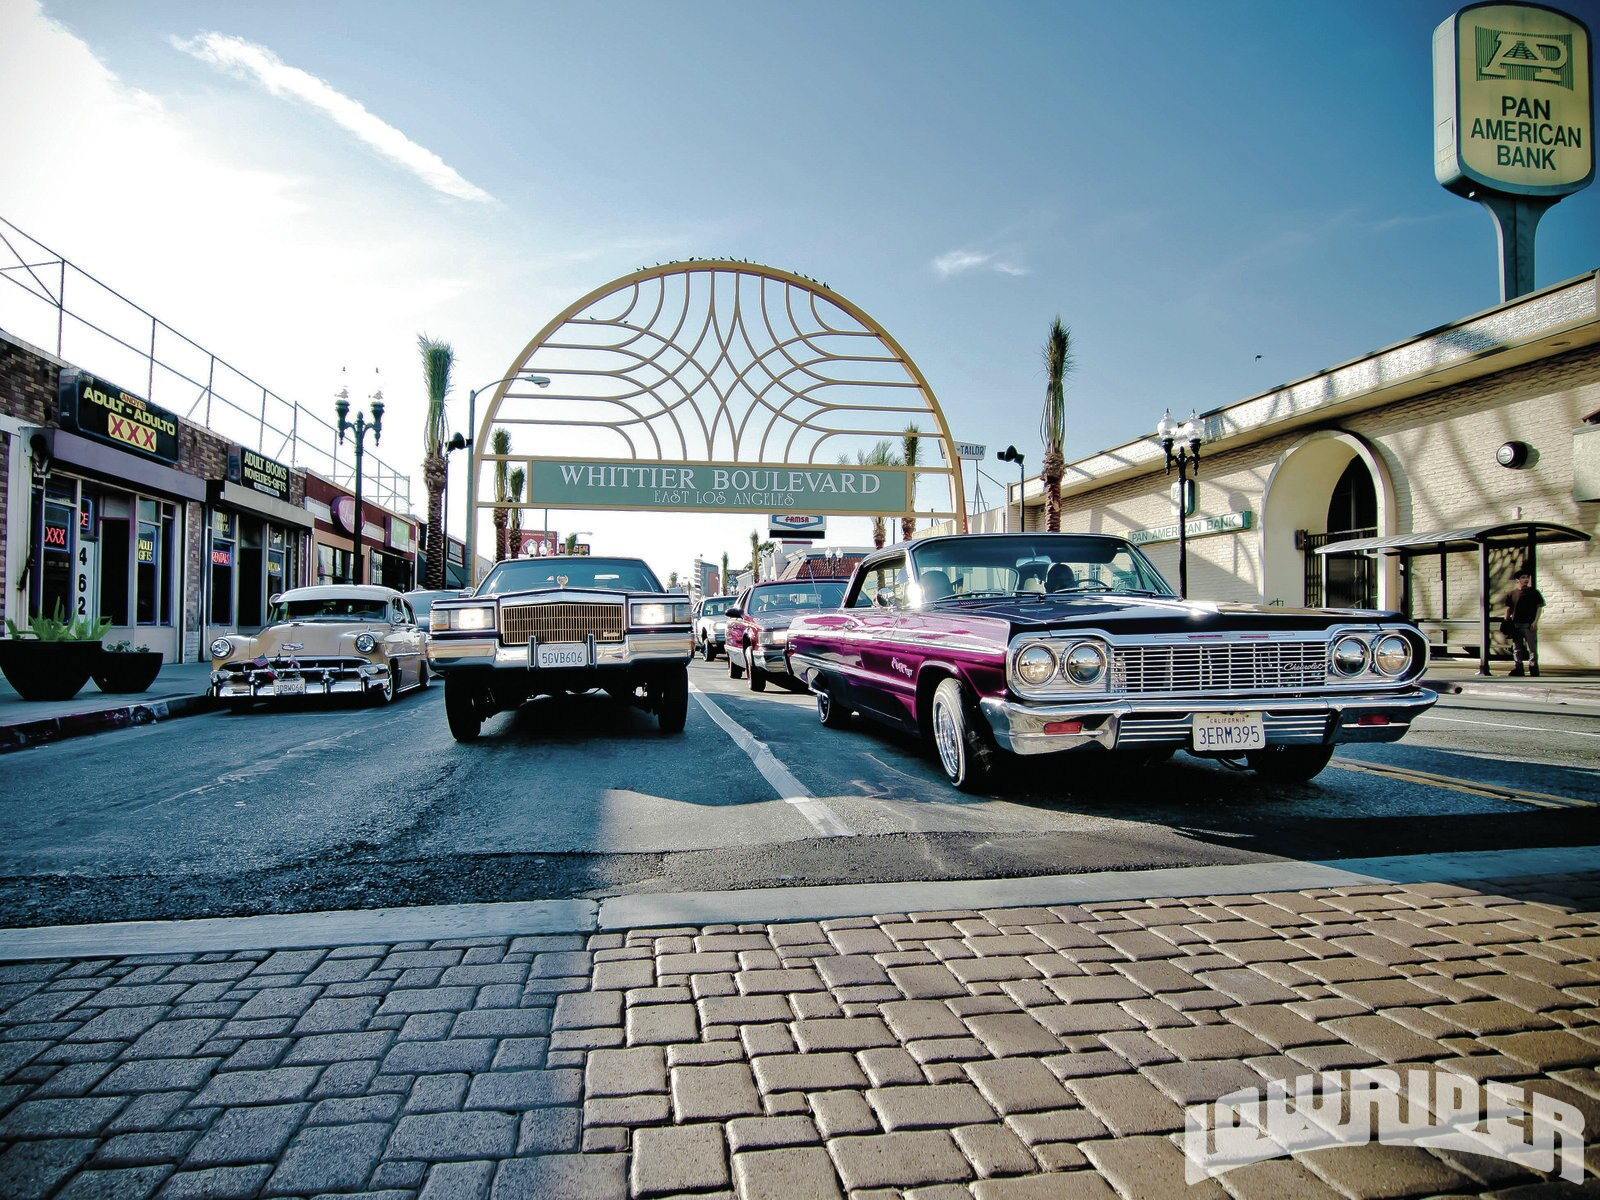 1209-lrmp-02-o-drifting-on-a-memory-whittier-boulevard1